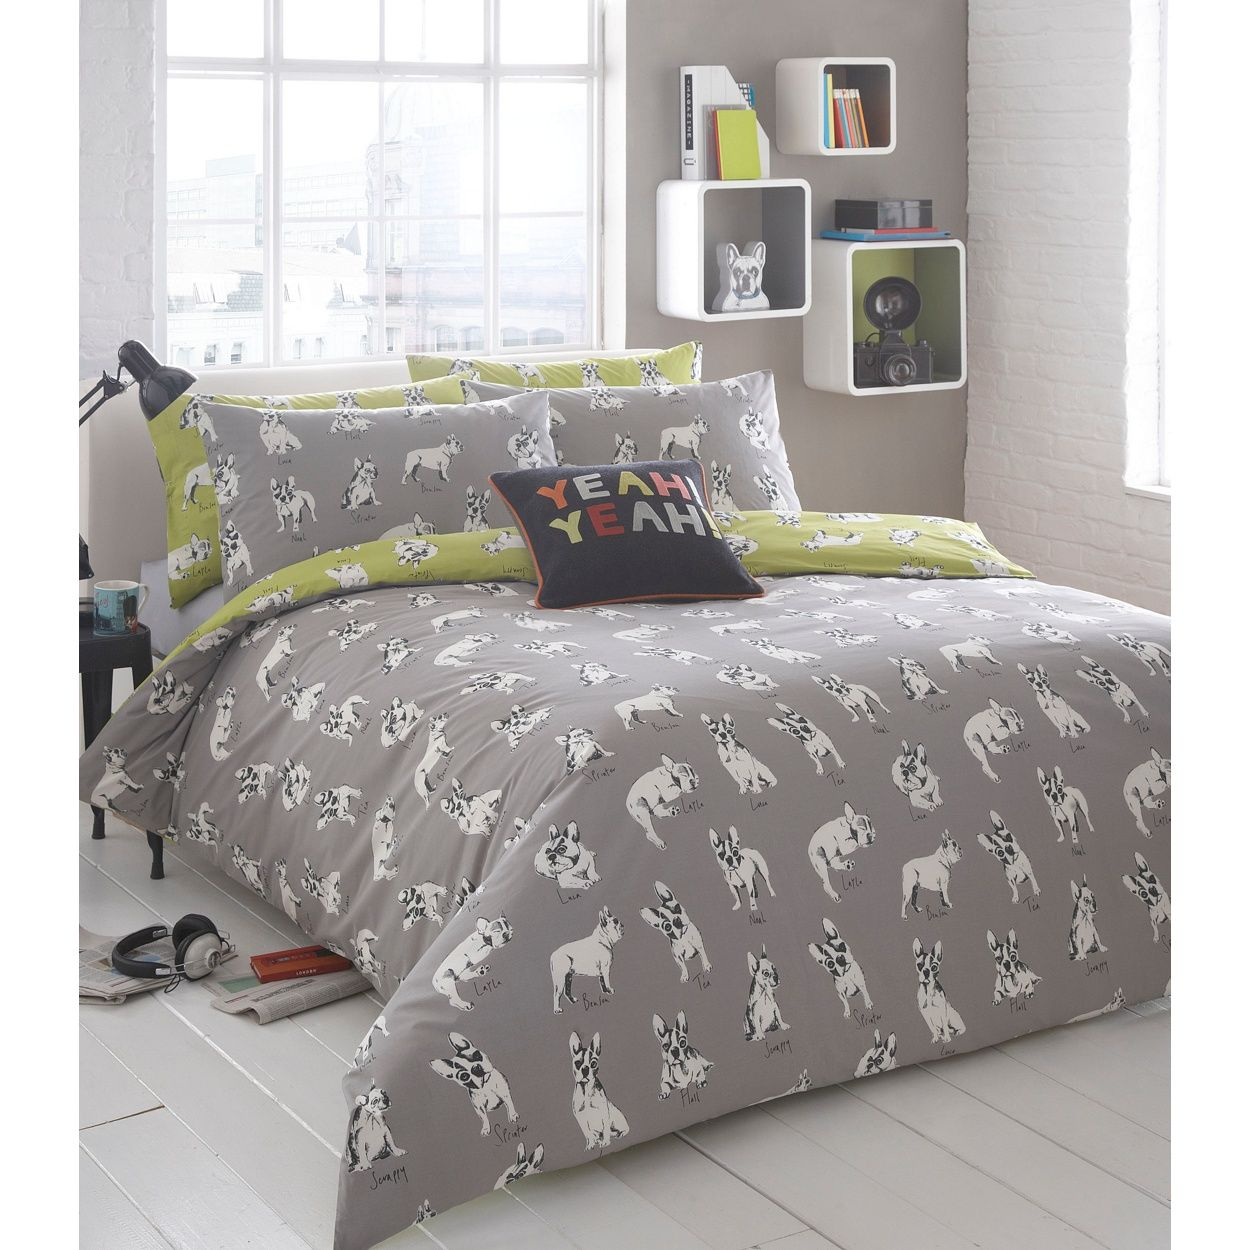 Ben De Lisi Home Sketchy Dog Bedding Set-